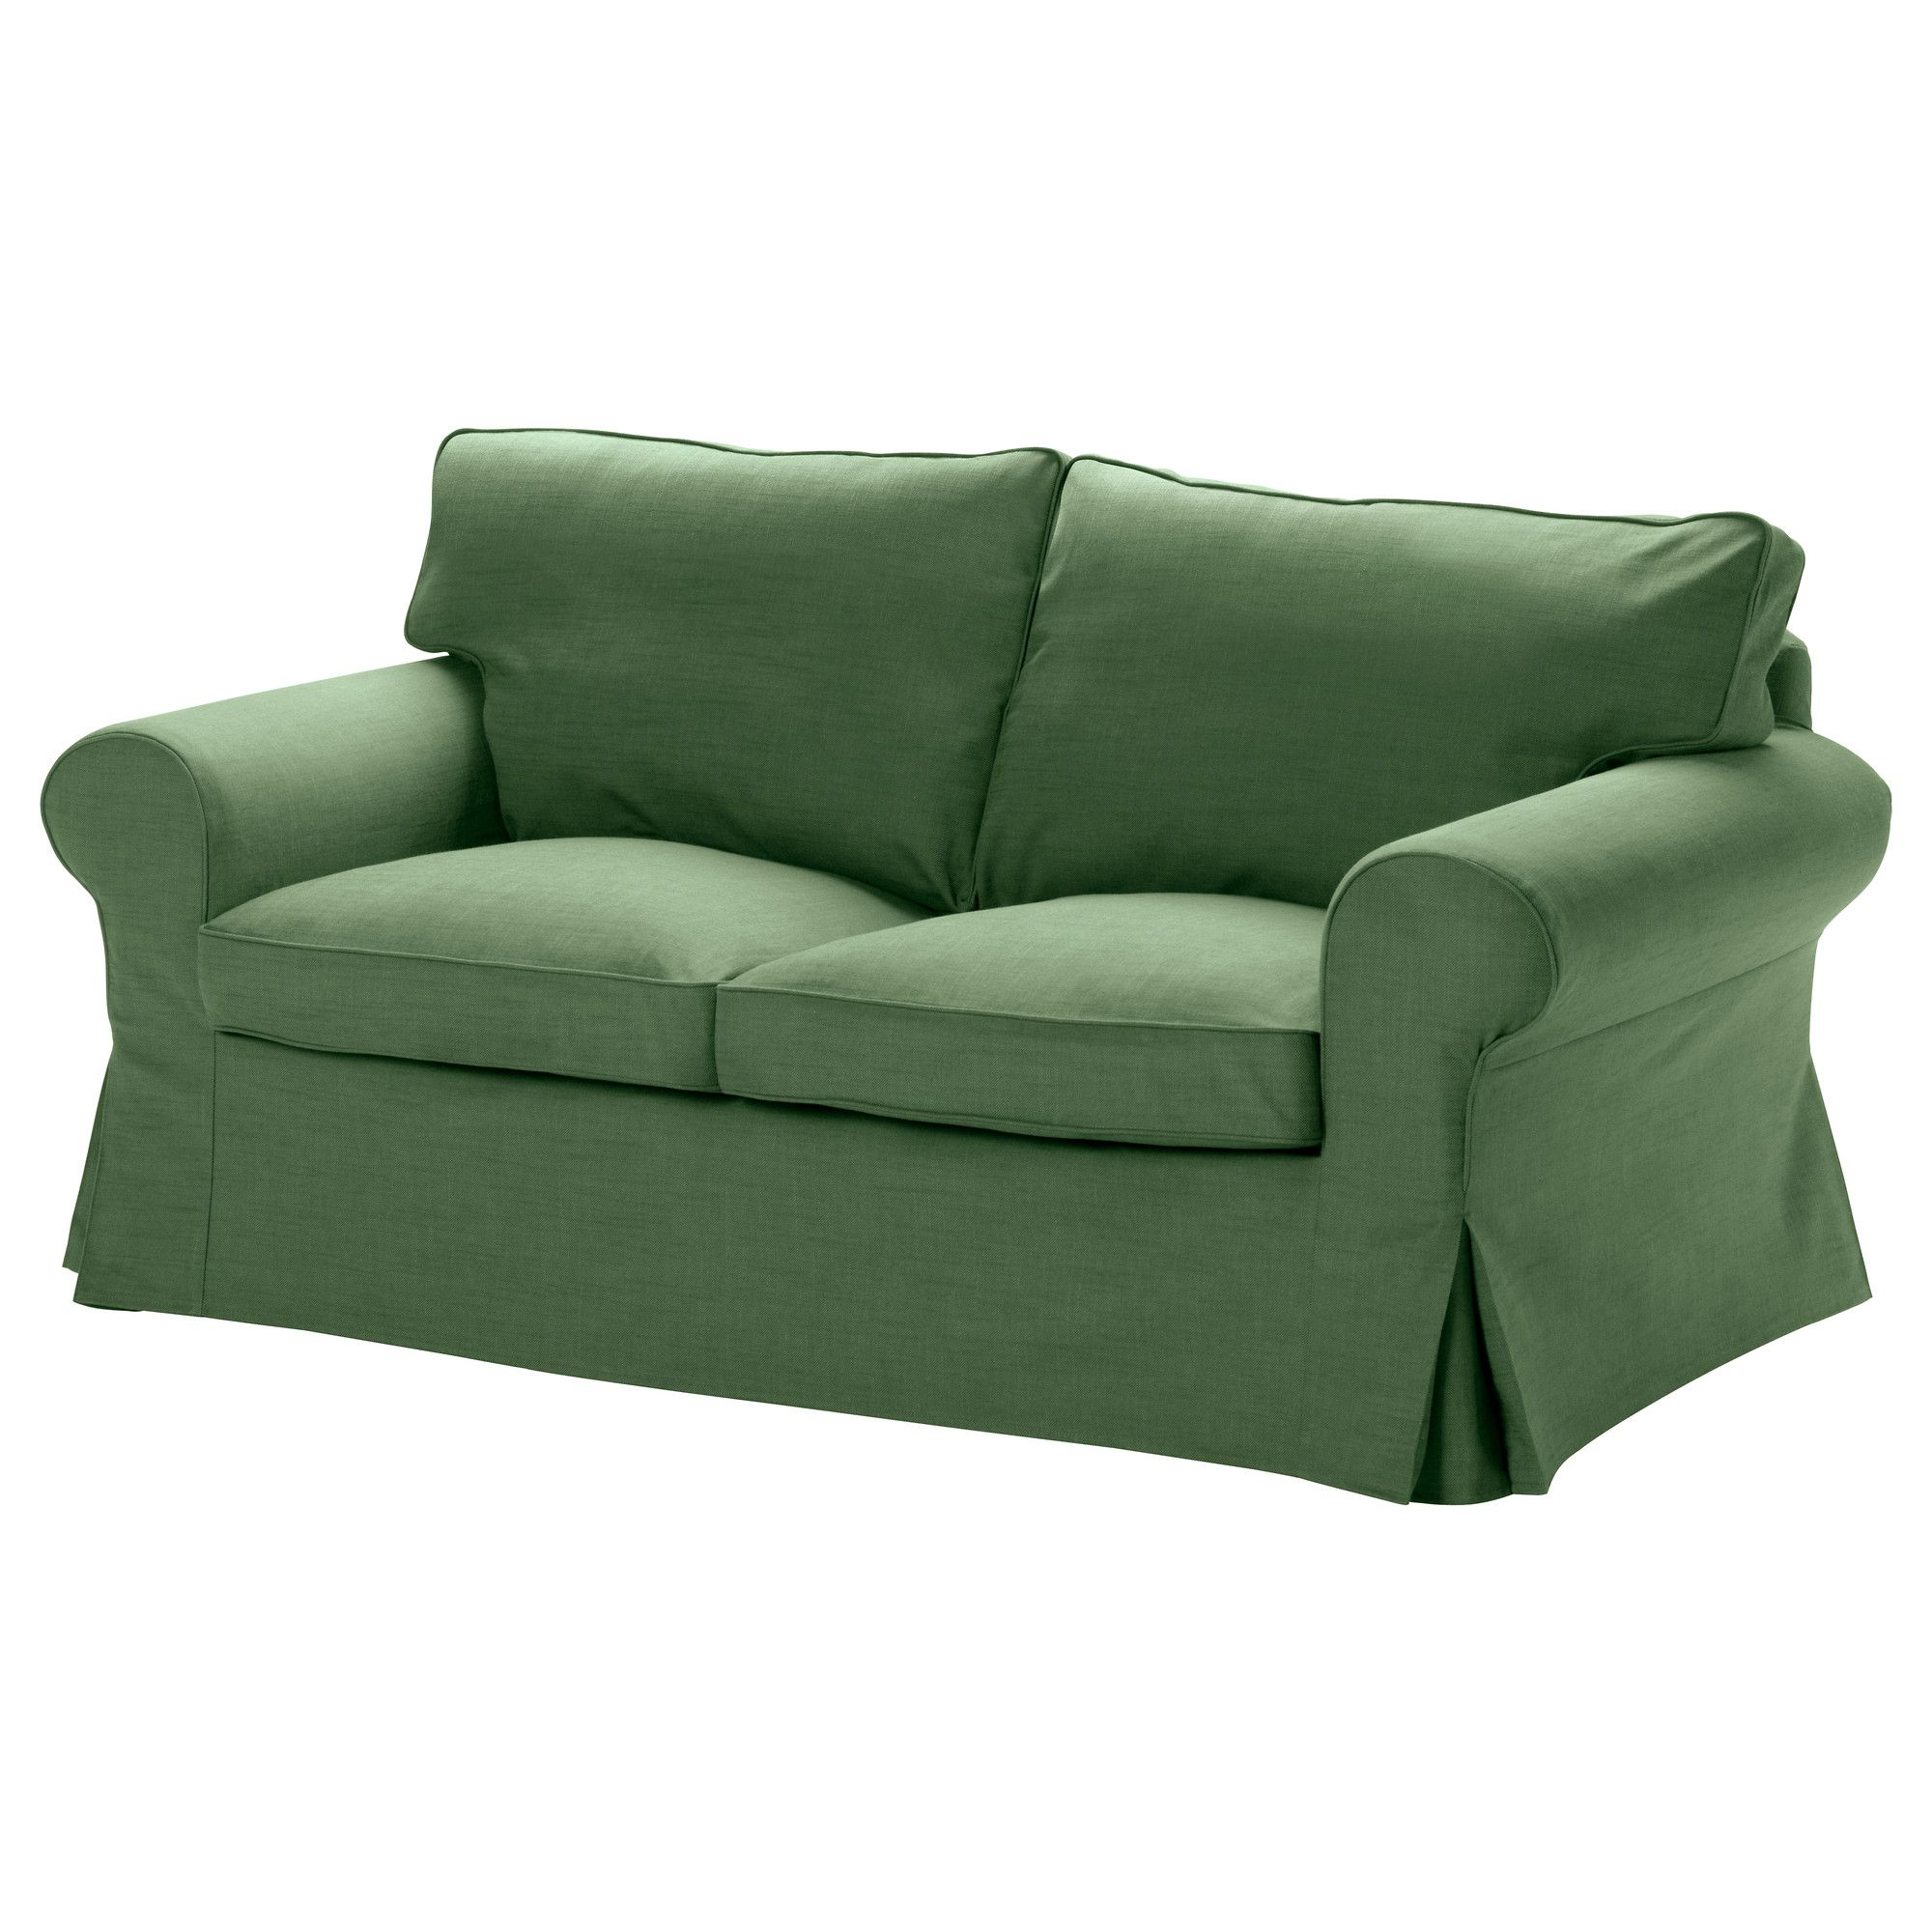 Rp Loveseat Svanby Green Ikea Sadly Now Discontinued One Of The Things That Really Irritates Me About